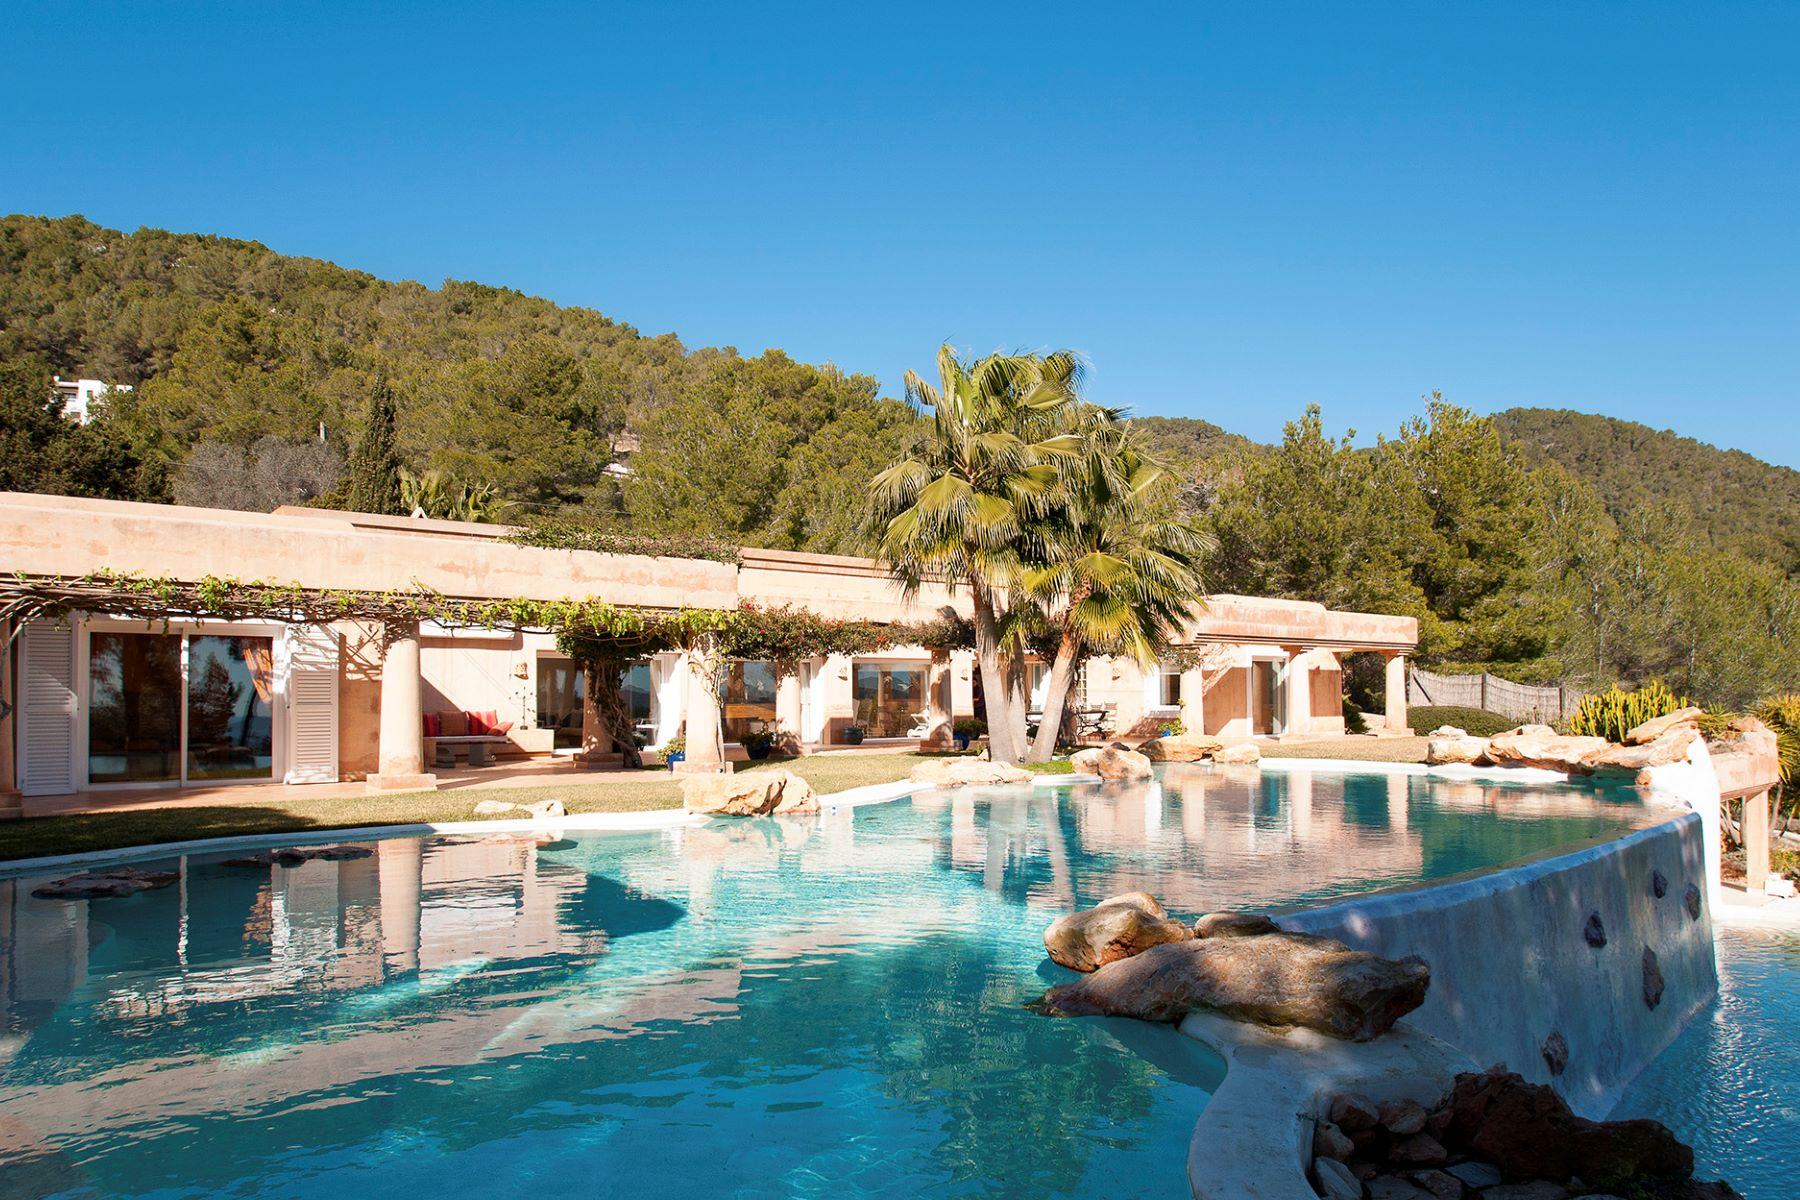 Moradia para Venda às Luxury Villa And Beautiful Setting In Es Cubells Sant Josep, Ibiza, 07817 Espanha